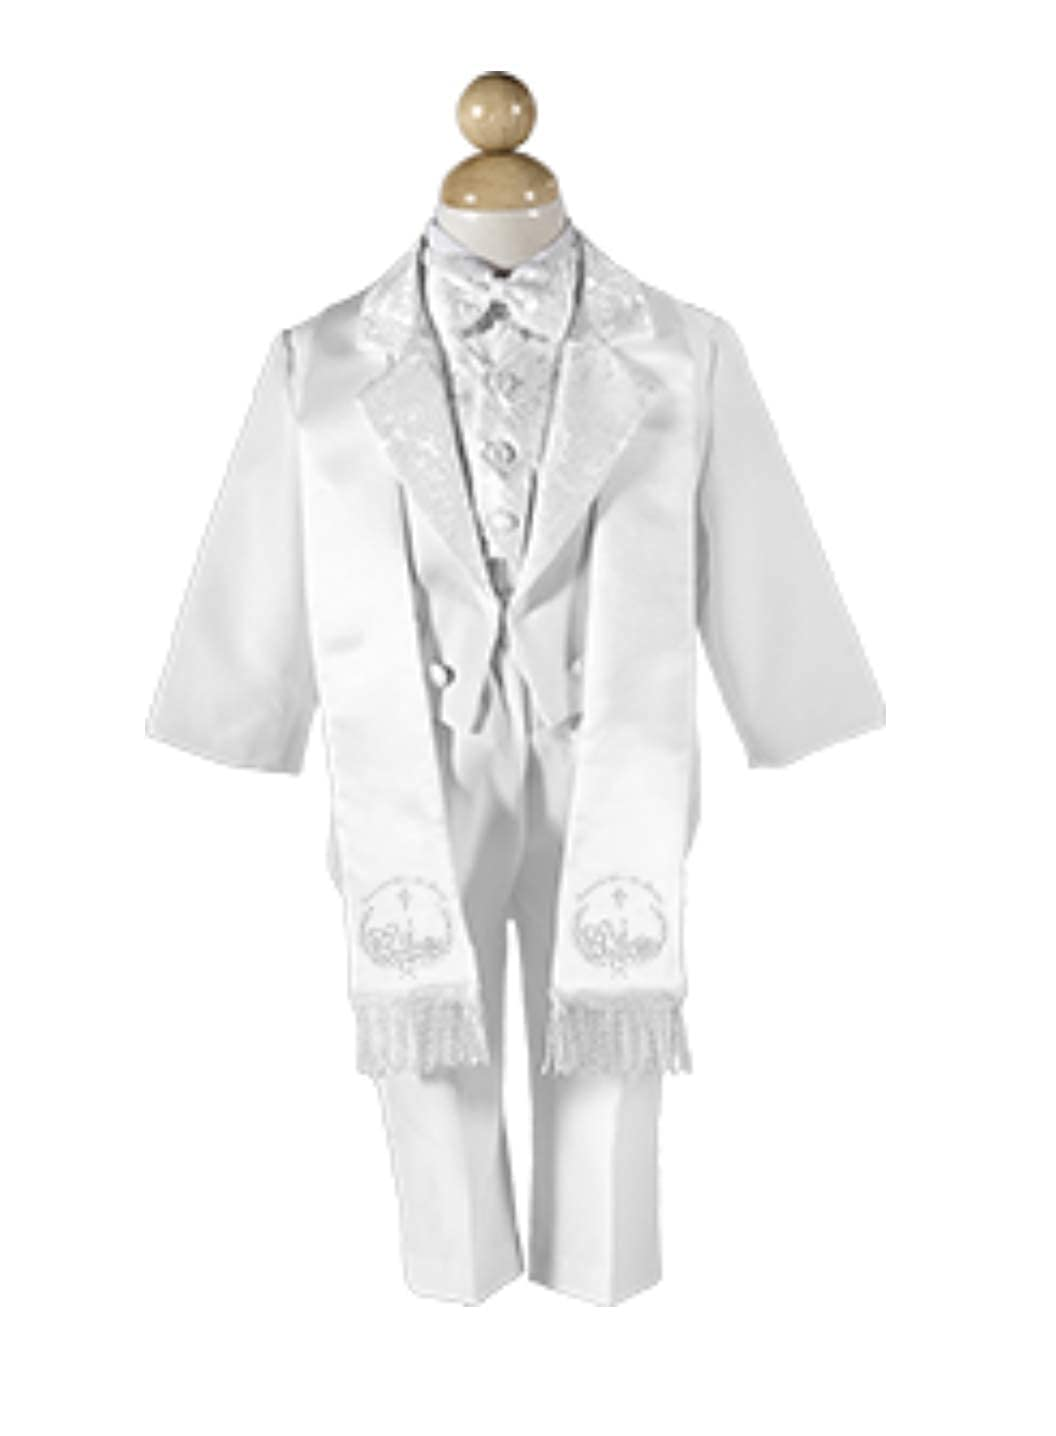 Amazon.com: Boys Baptism/Christening Suit, Traje De Bautizo ...